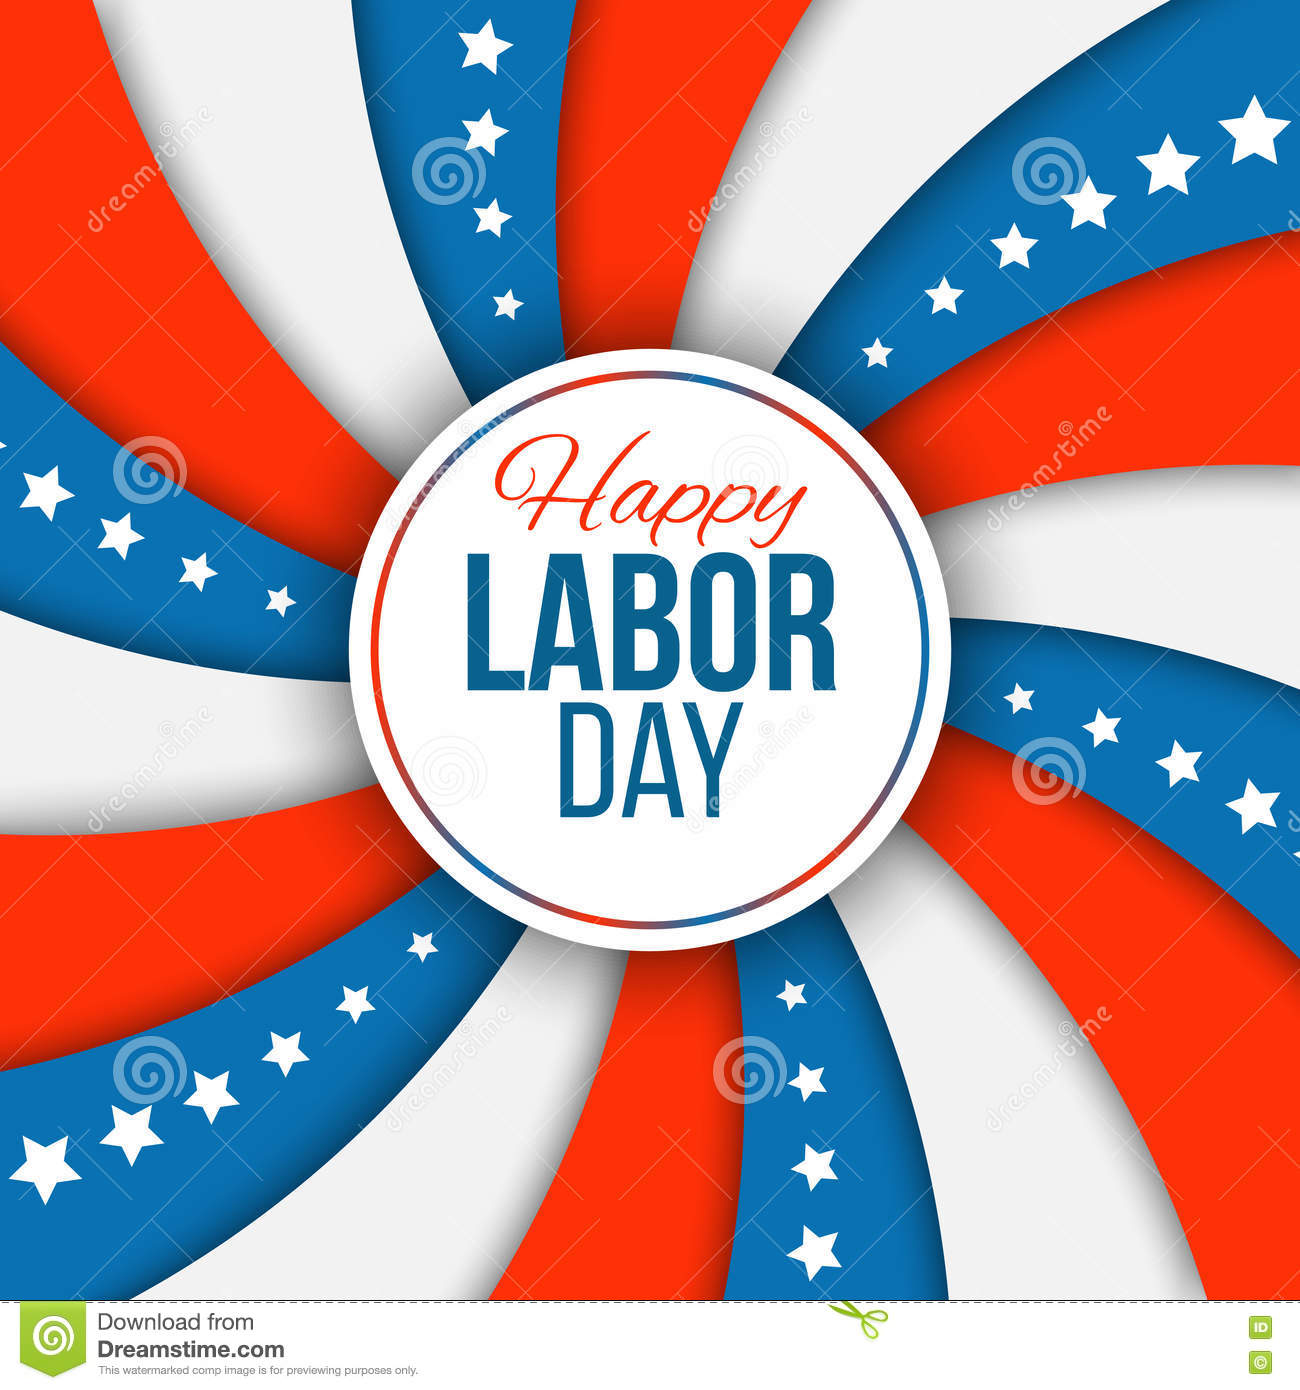 labor day background vector illustration with stars and stripes for